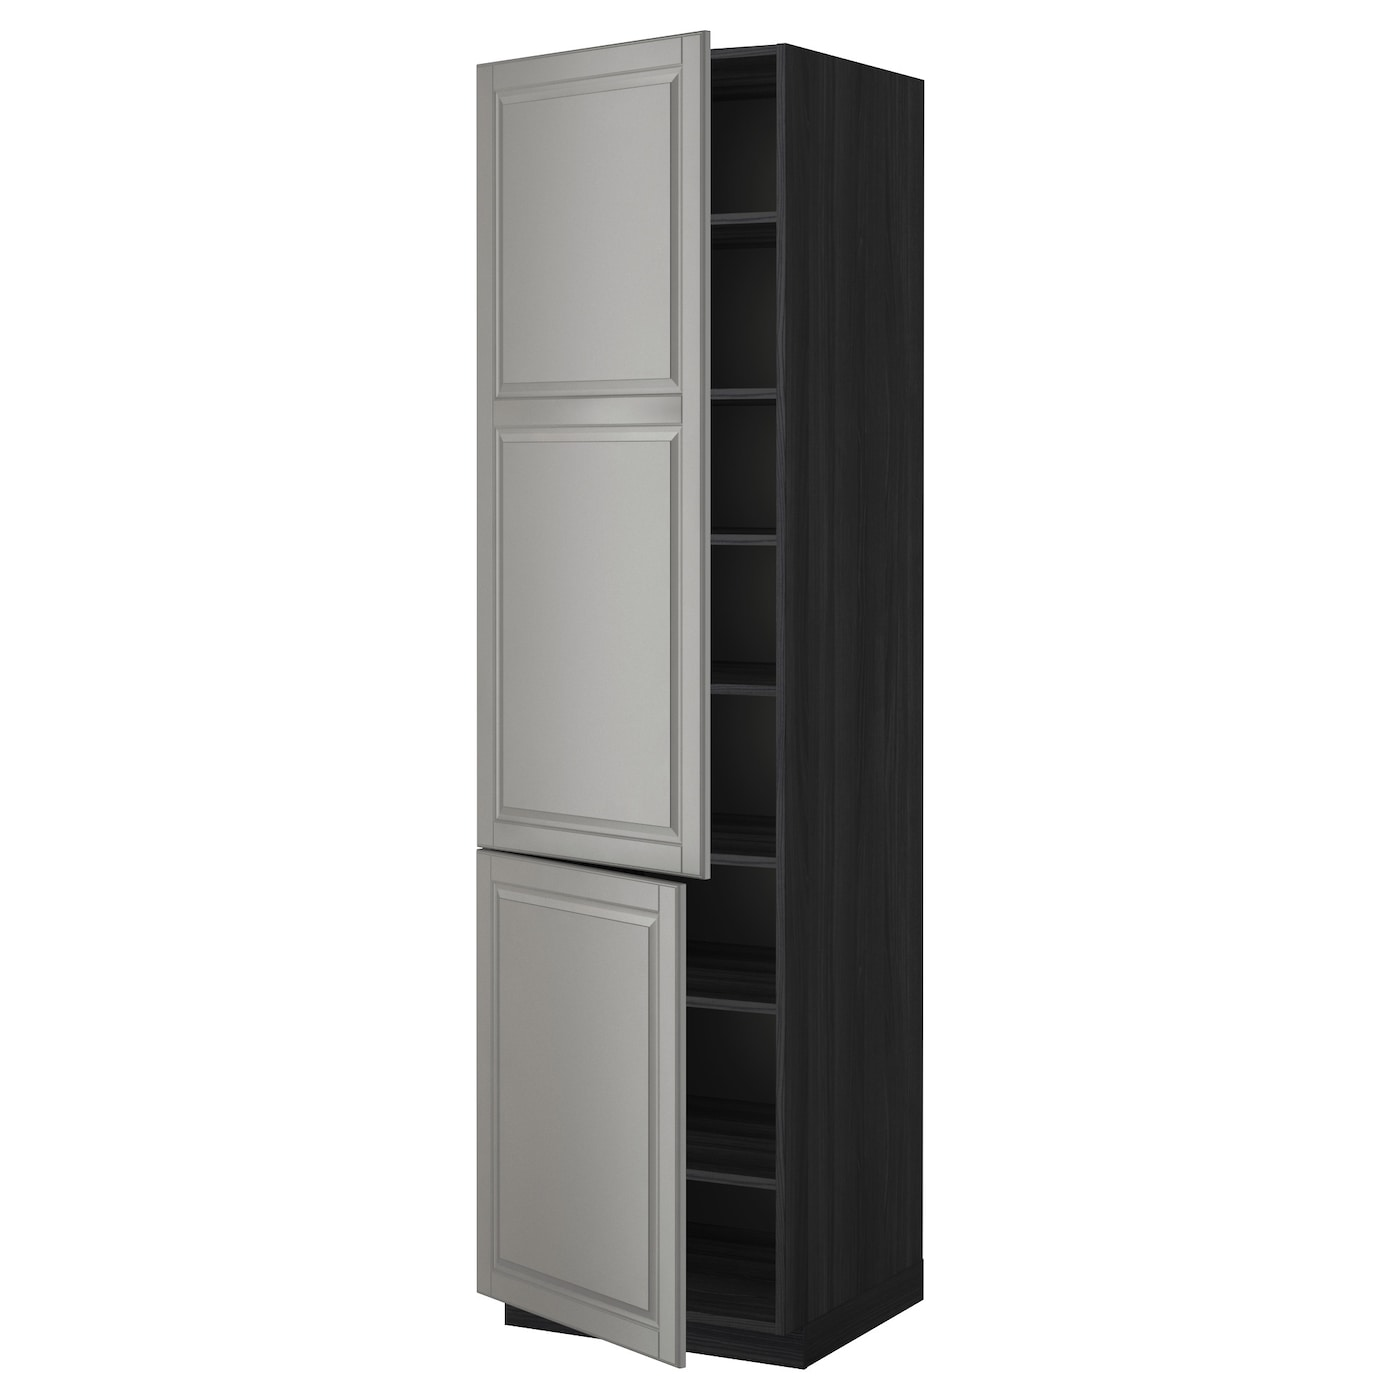 Metod high cabinet with shelves 2 doors black bodbyn grey - Ikea cabinet doors on existing cabinets ...